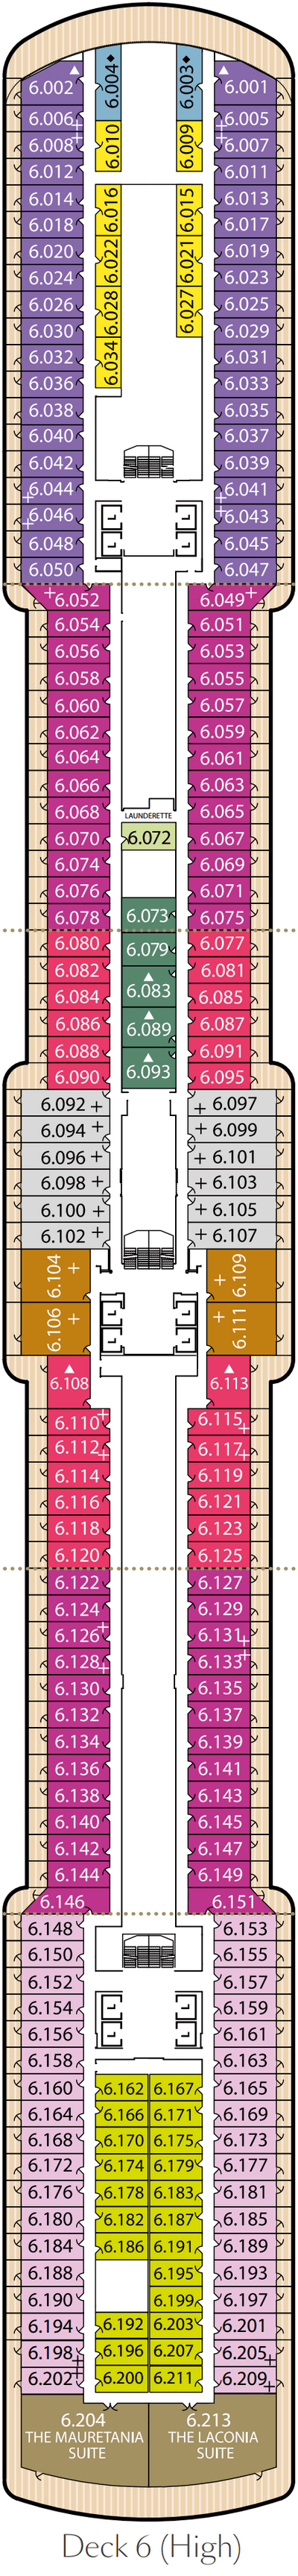 Queen Victoria Deck 6 layout